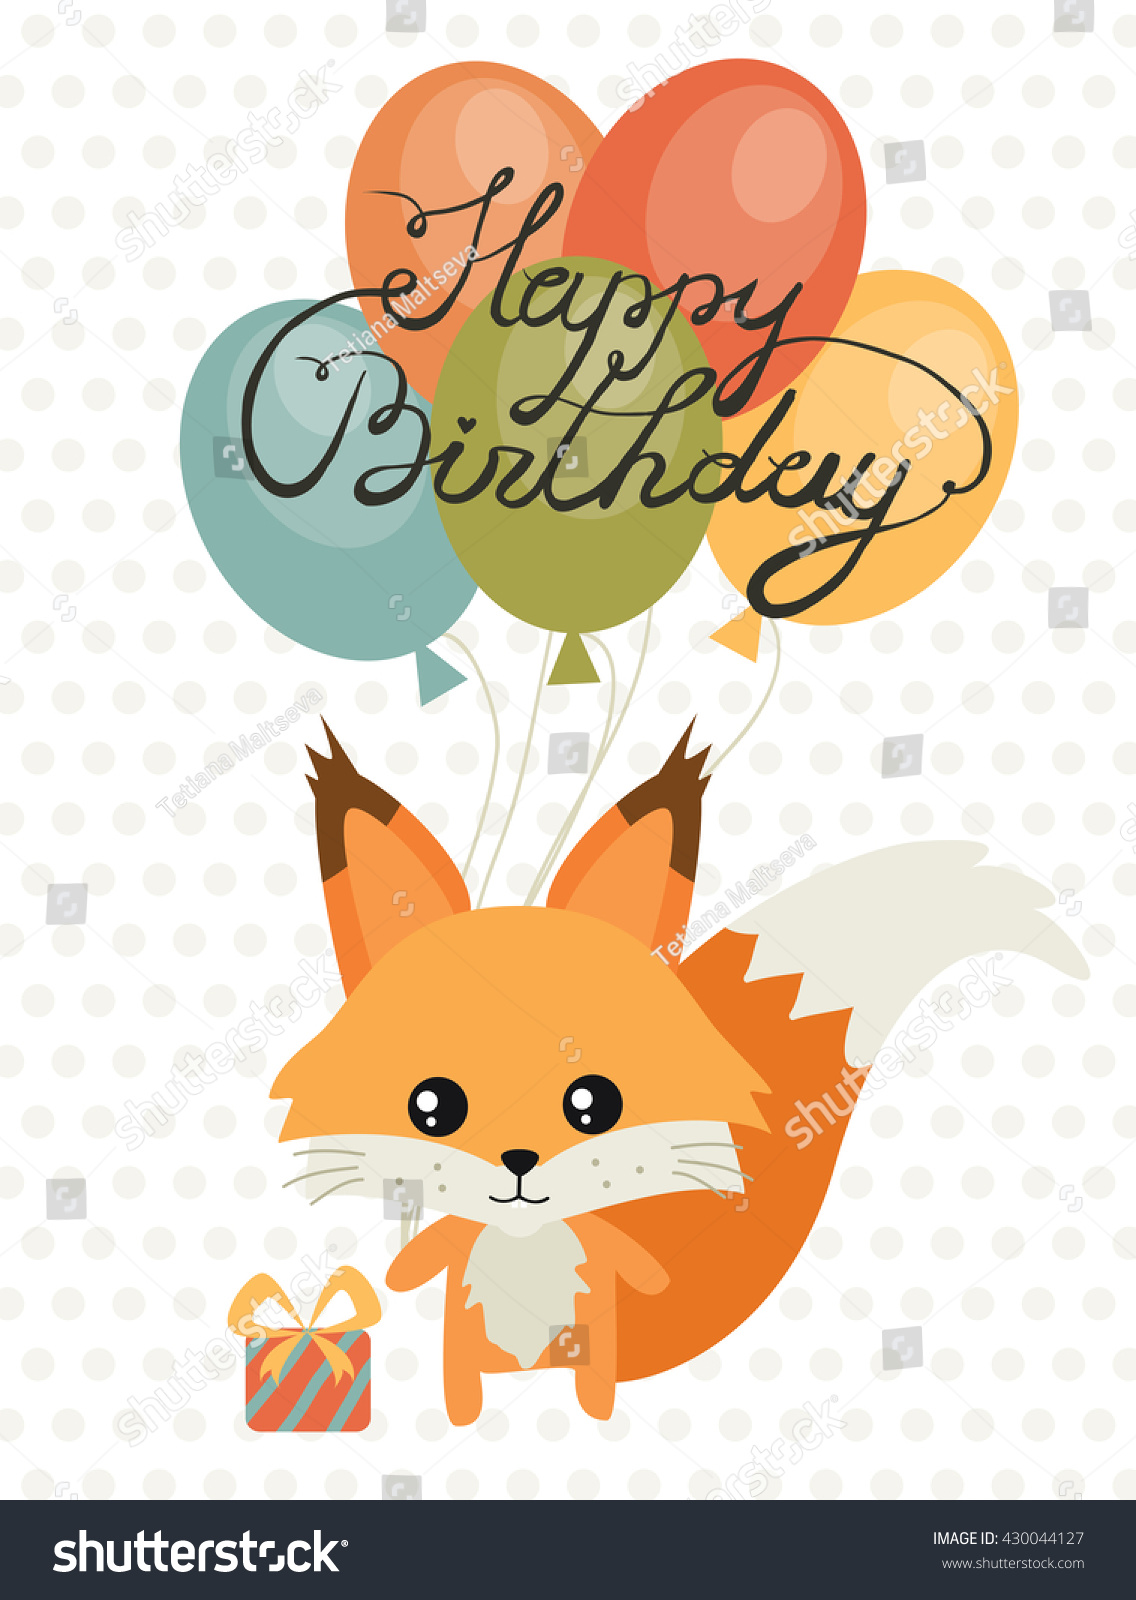 cute birthday pics ; stock-vector-happy-birthday-card-for-birthday-with-cute-squirrel-and-calligraphy-children-s-birthday-party-430044127